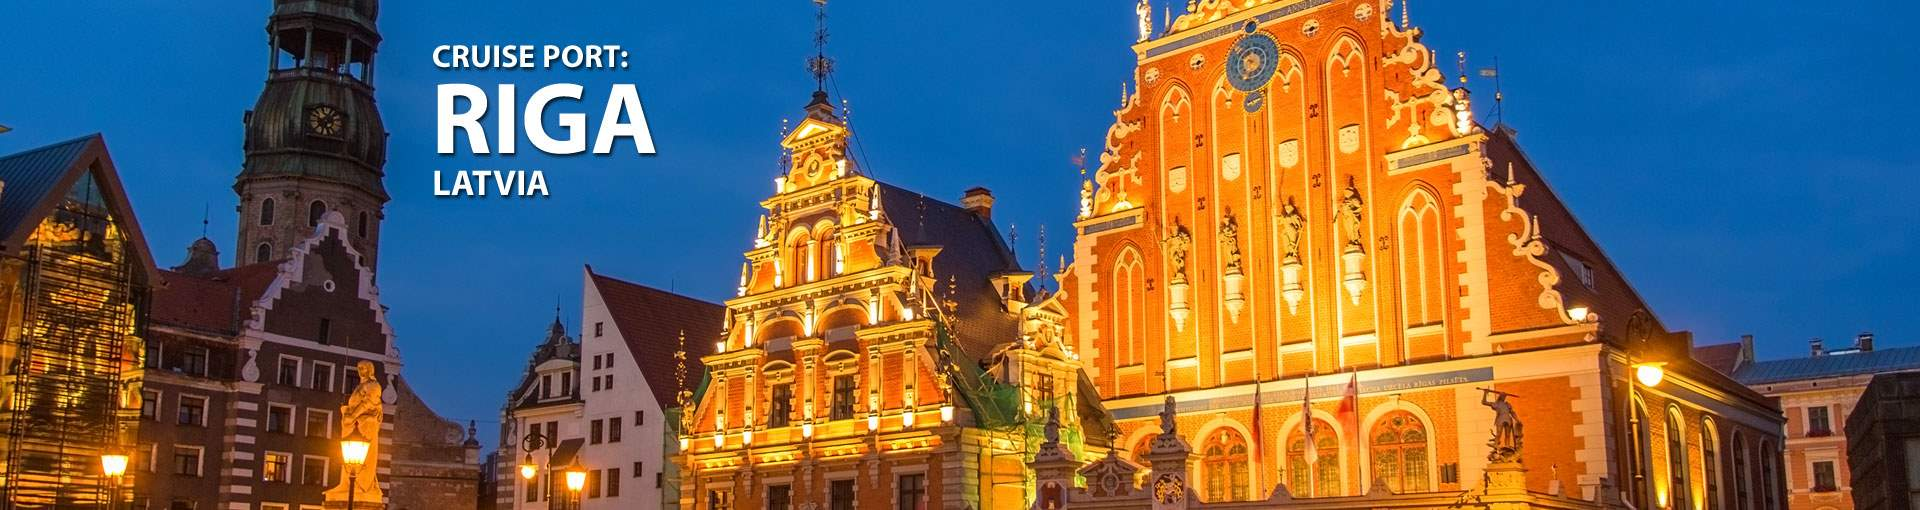 Cruises to Riga, Latvia